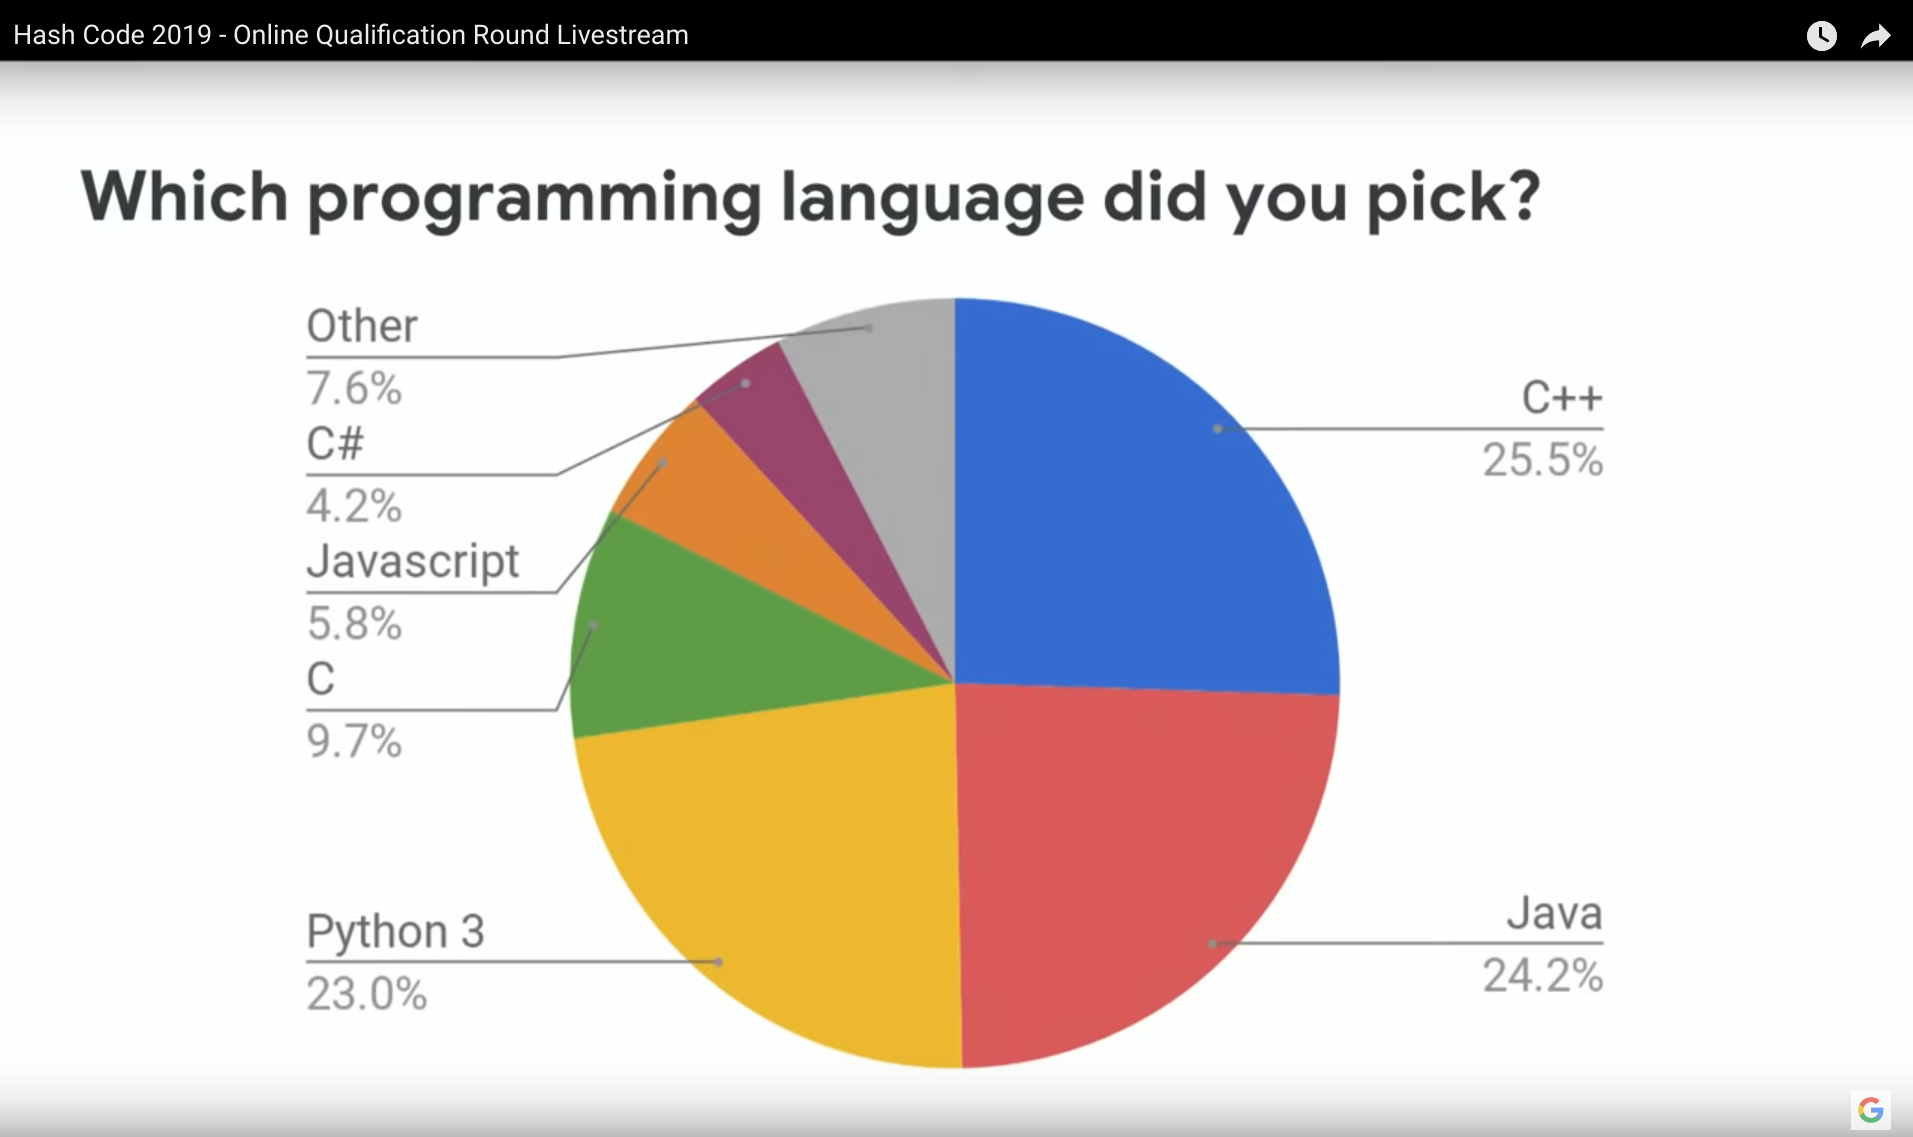 Programming languages used in Hash Code 2019